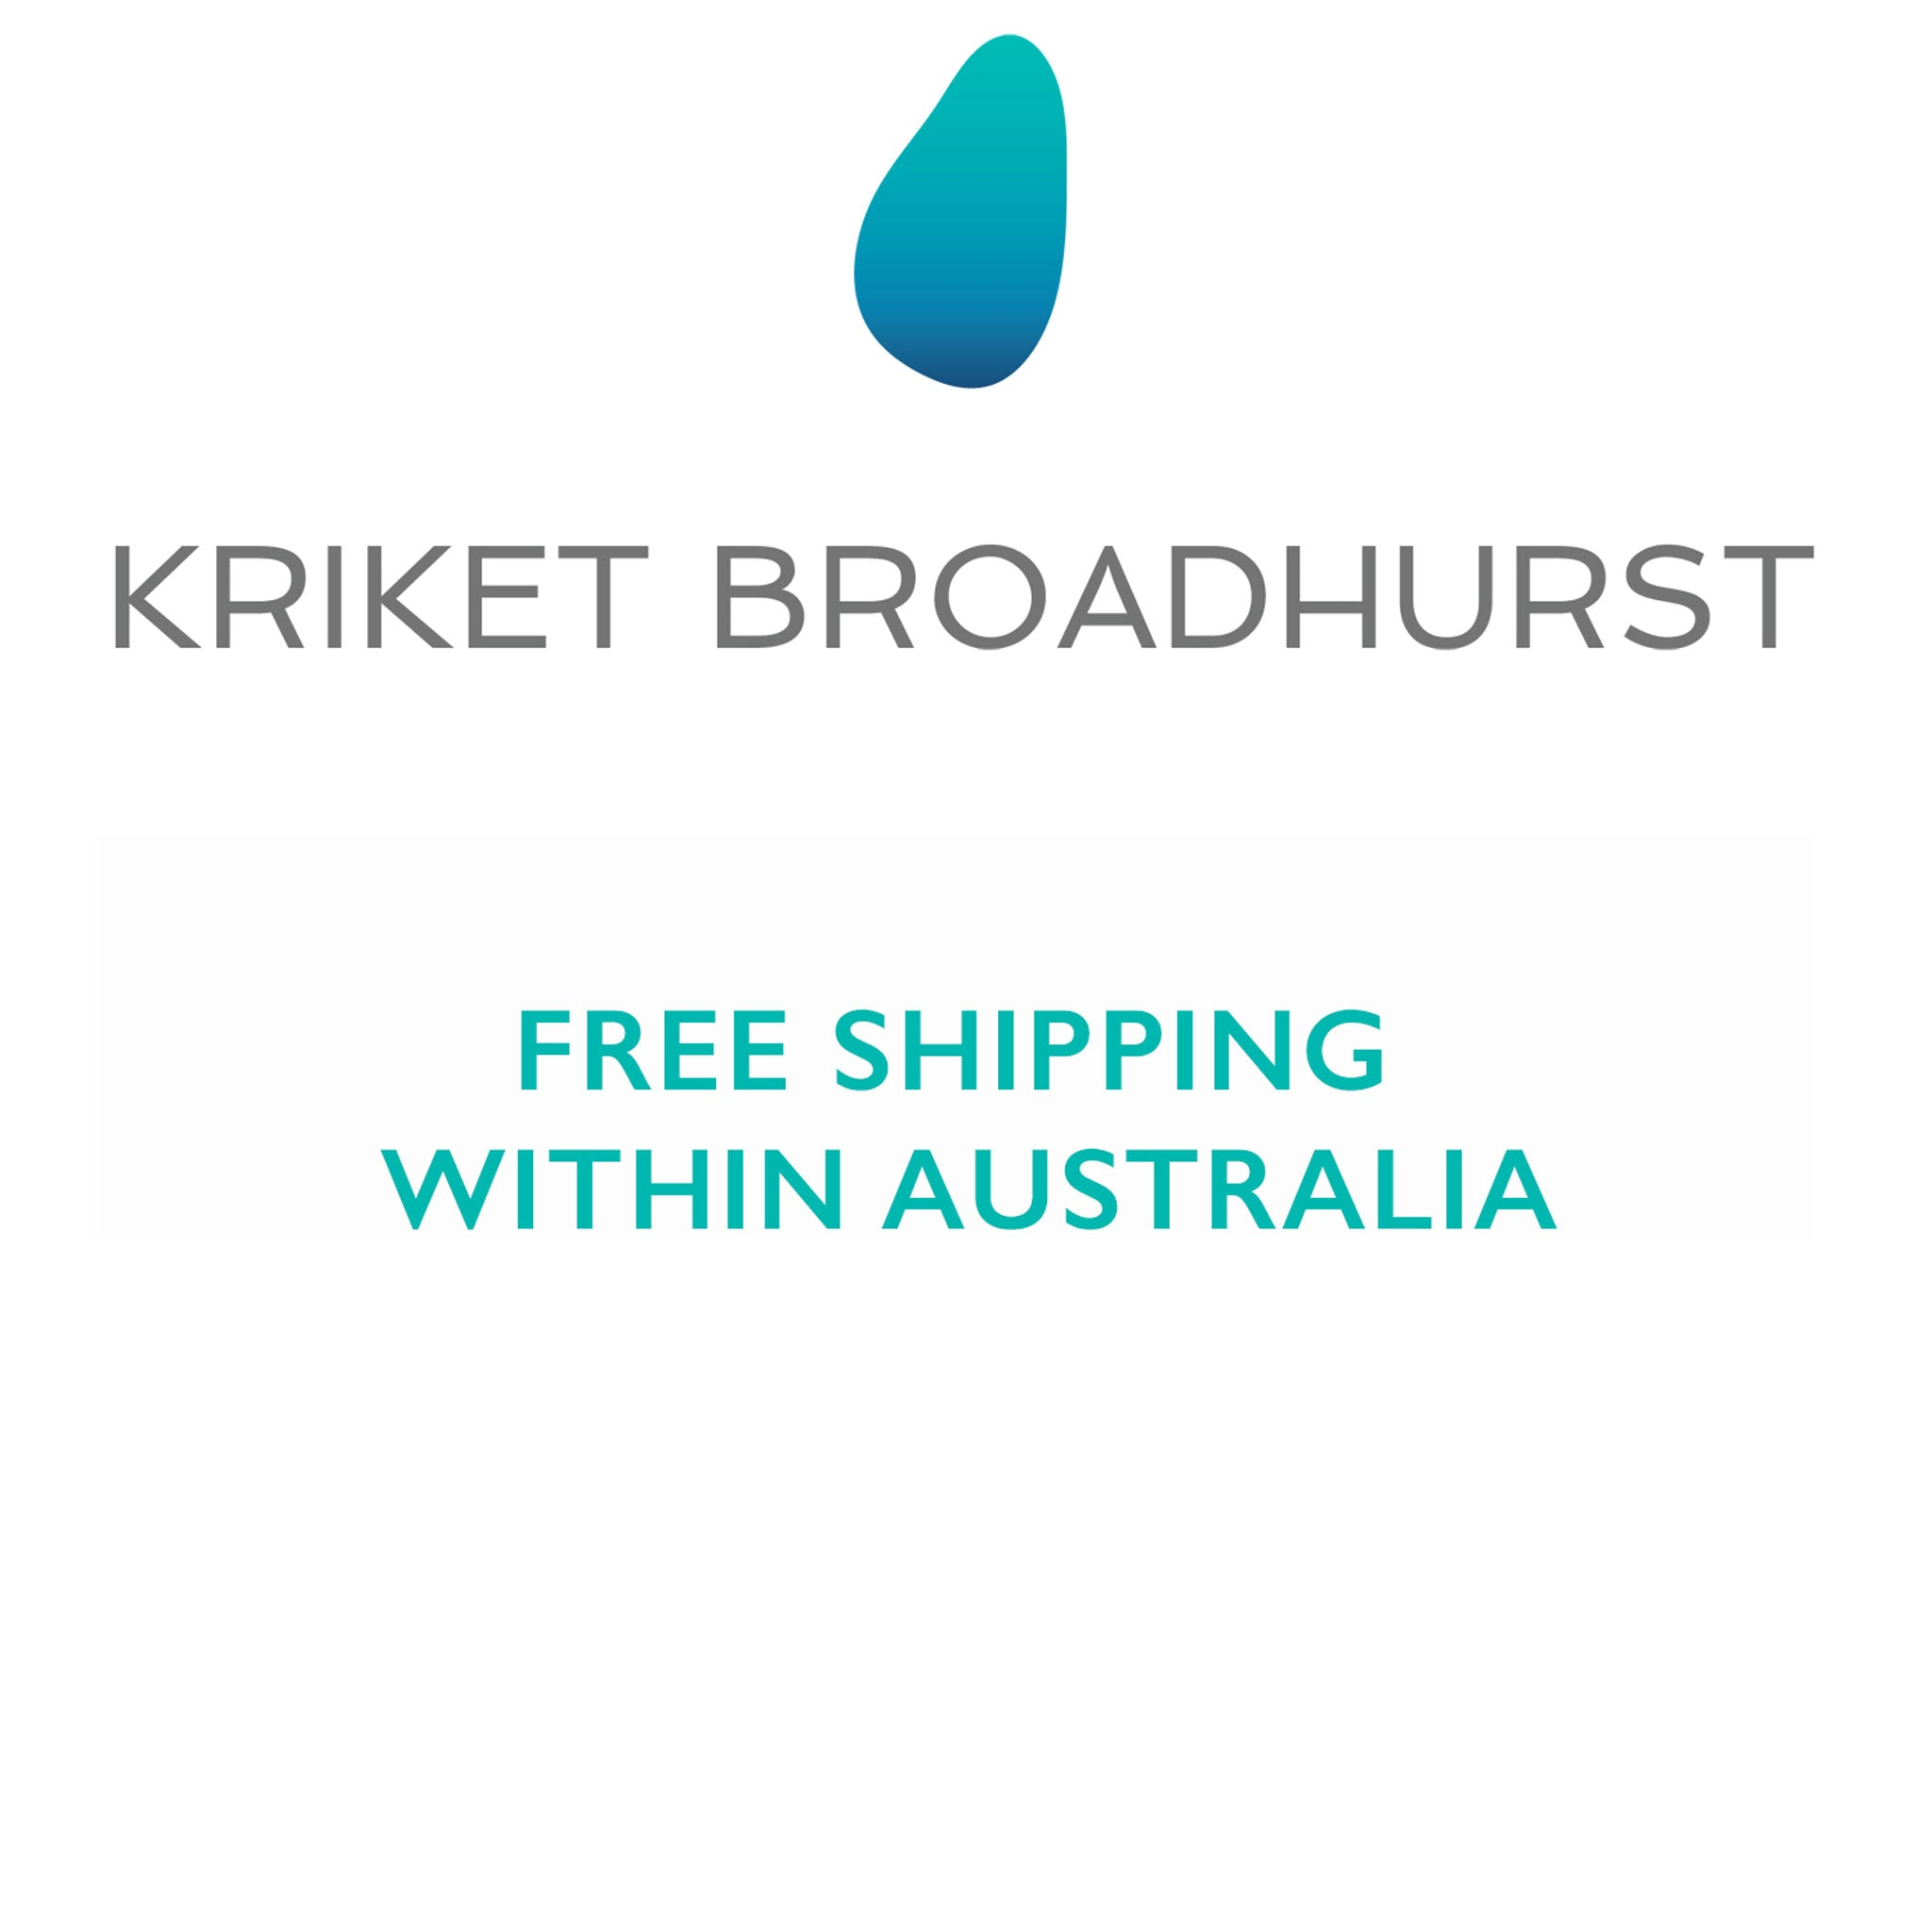 kriket broadhurst jewellery free shipping in Australia